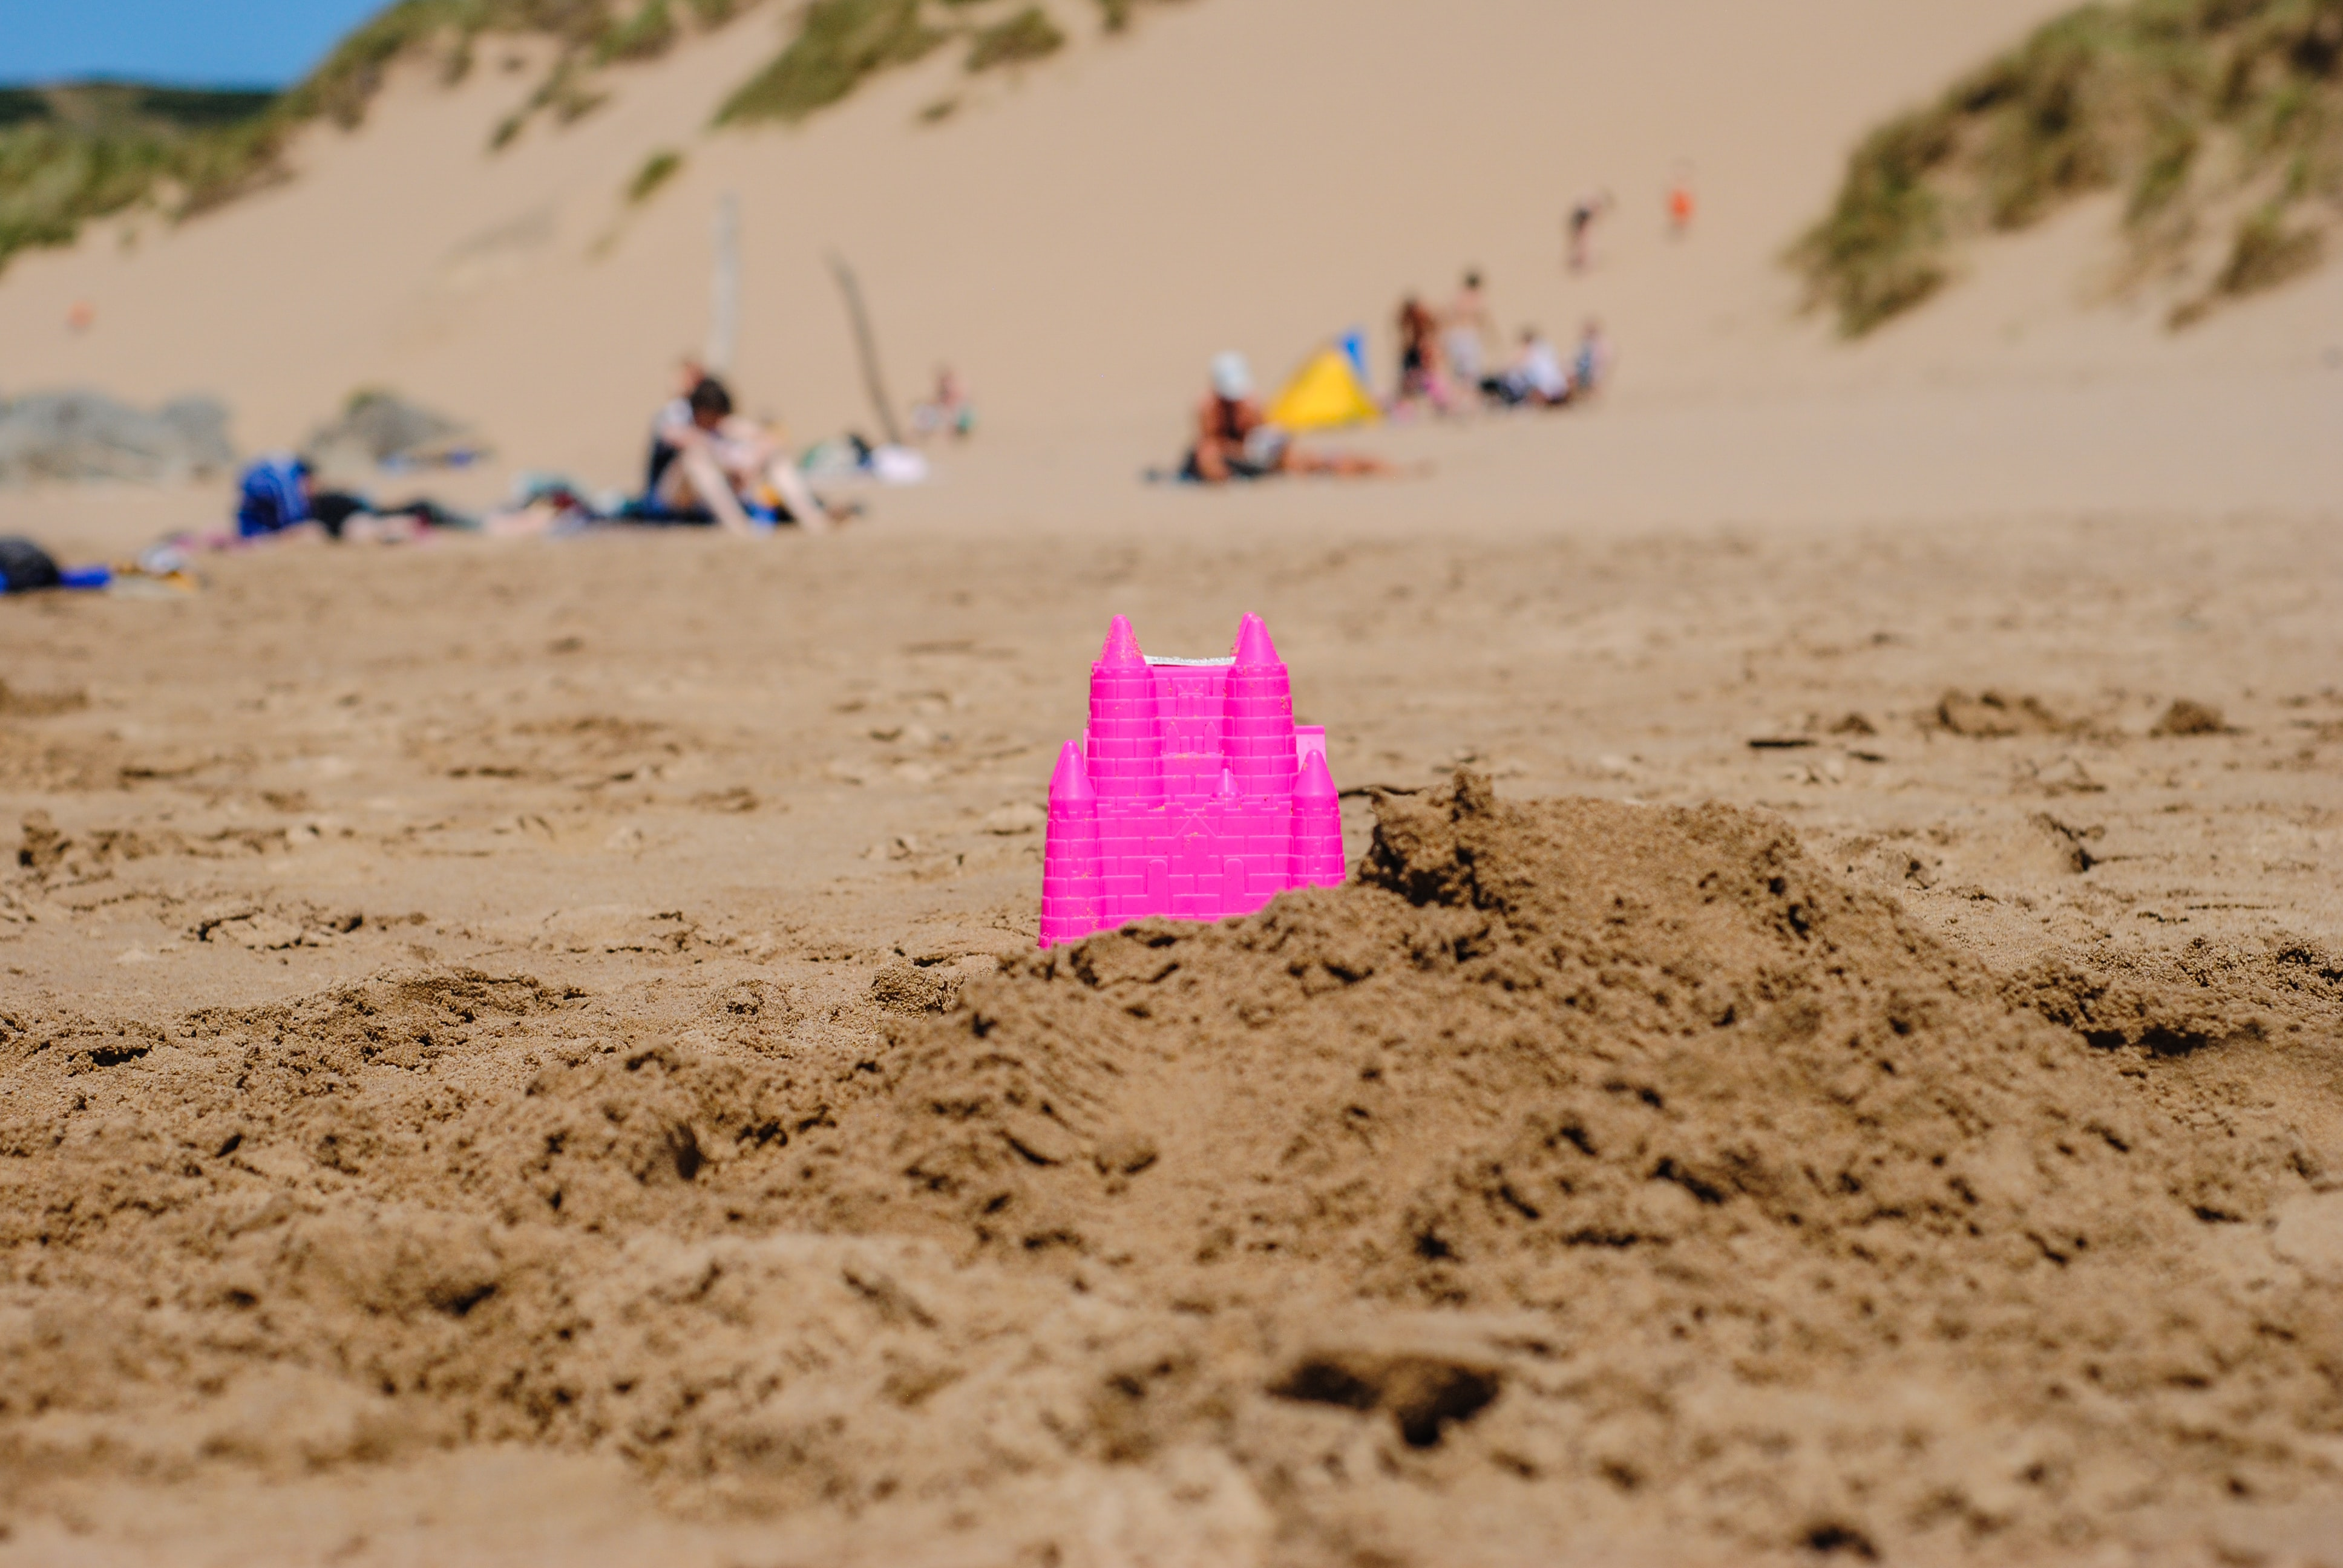 pink castle toy in shore at daytime